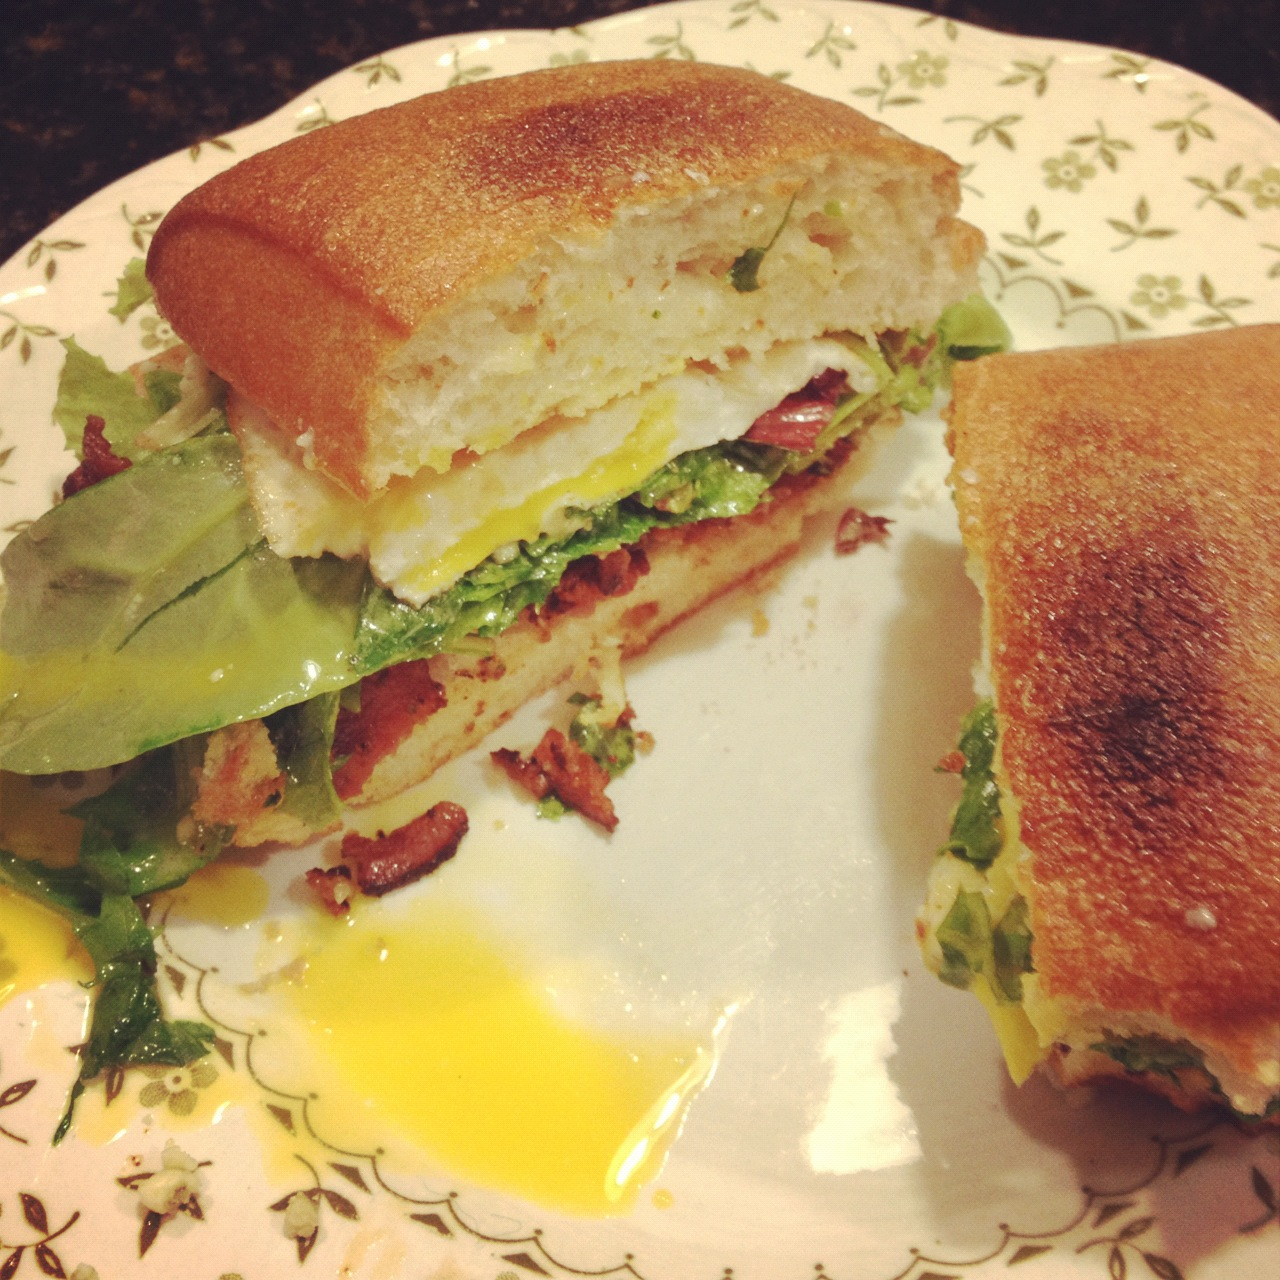 UMN Cooks: Fried Egg Sandwich with Bacon and Blue Cheese